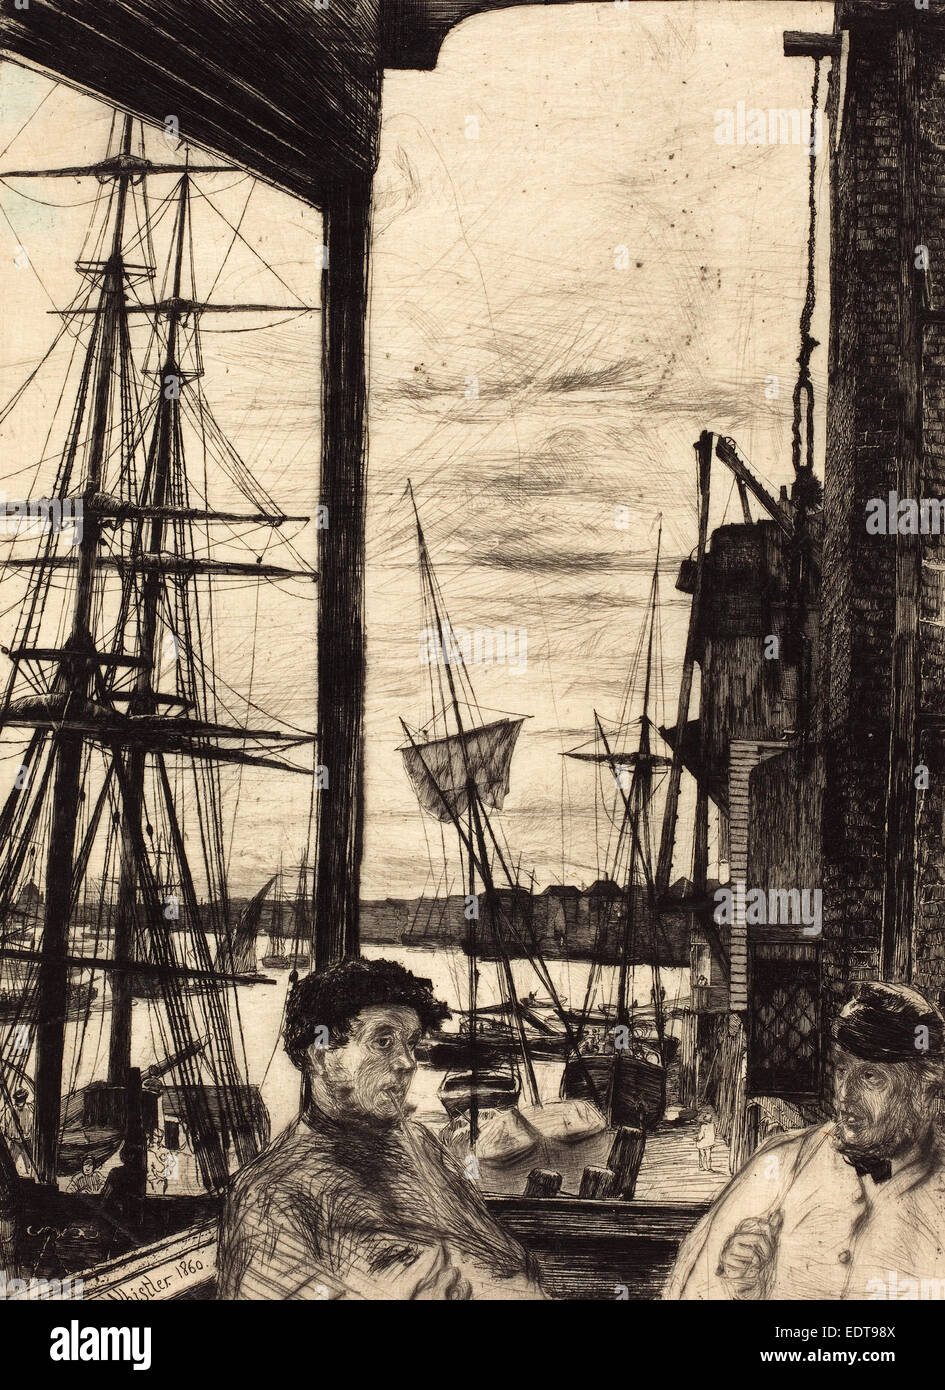 James McNeill Whistler (American, 1834 - 1903), Rotherhithe, 1860, etching - Stock Image